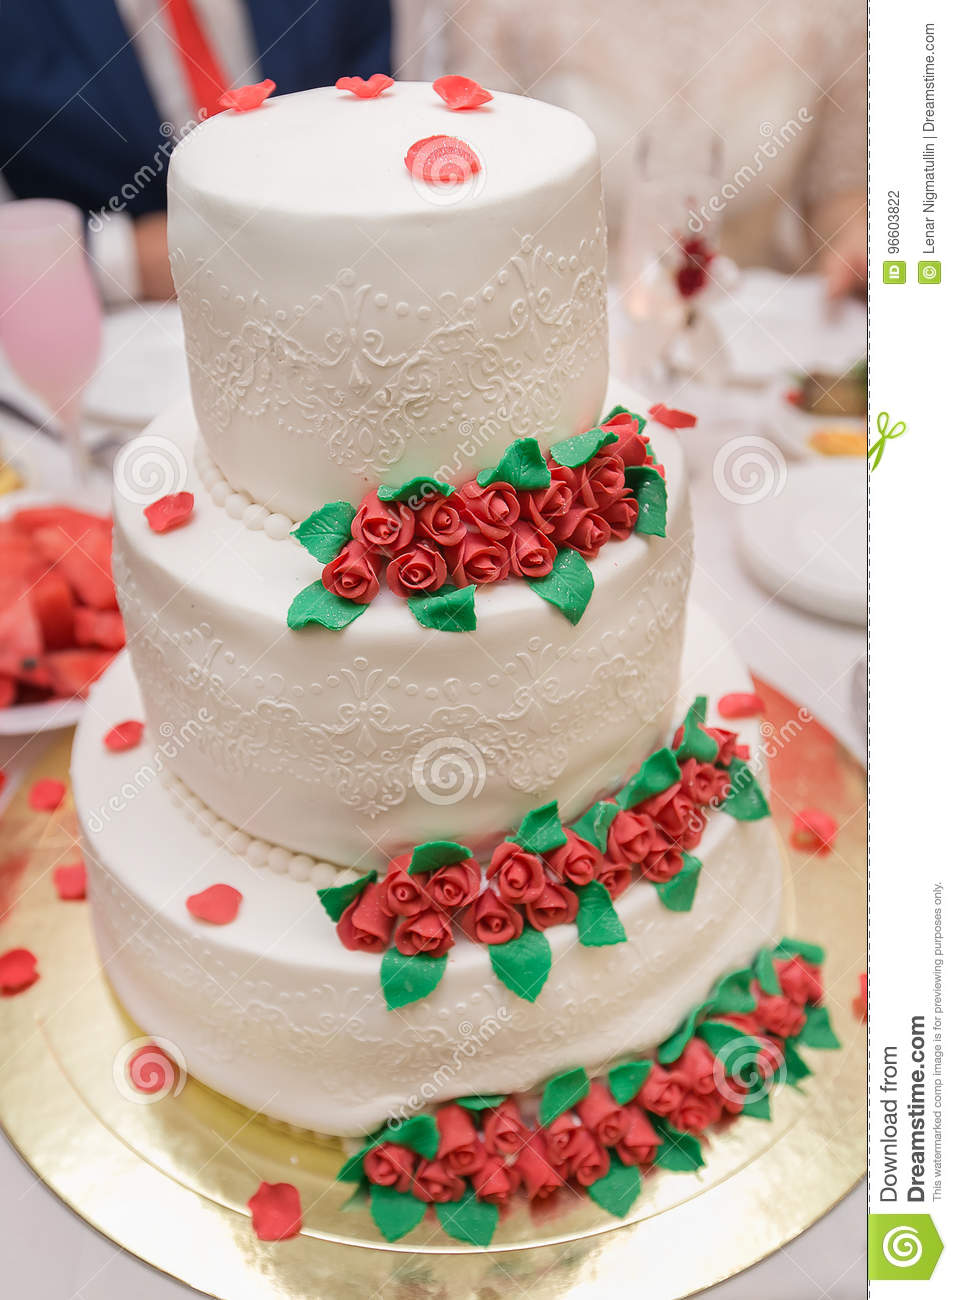 White Wedding Cake On Wedding Banquet With Red Rose And Other